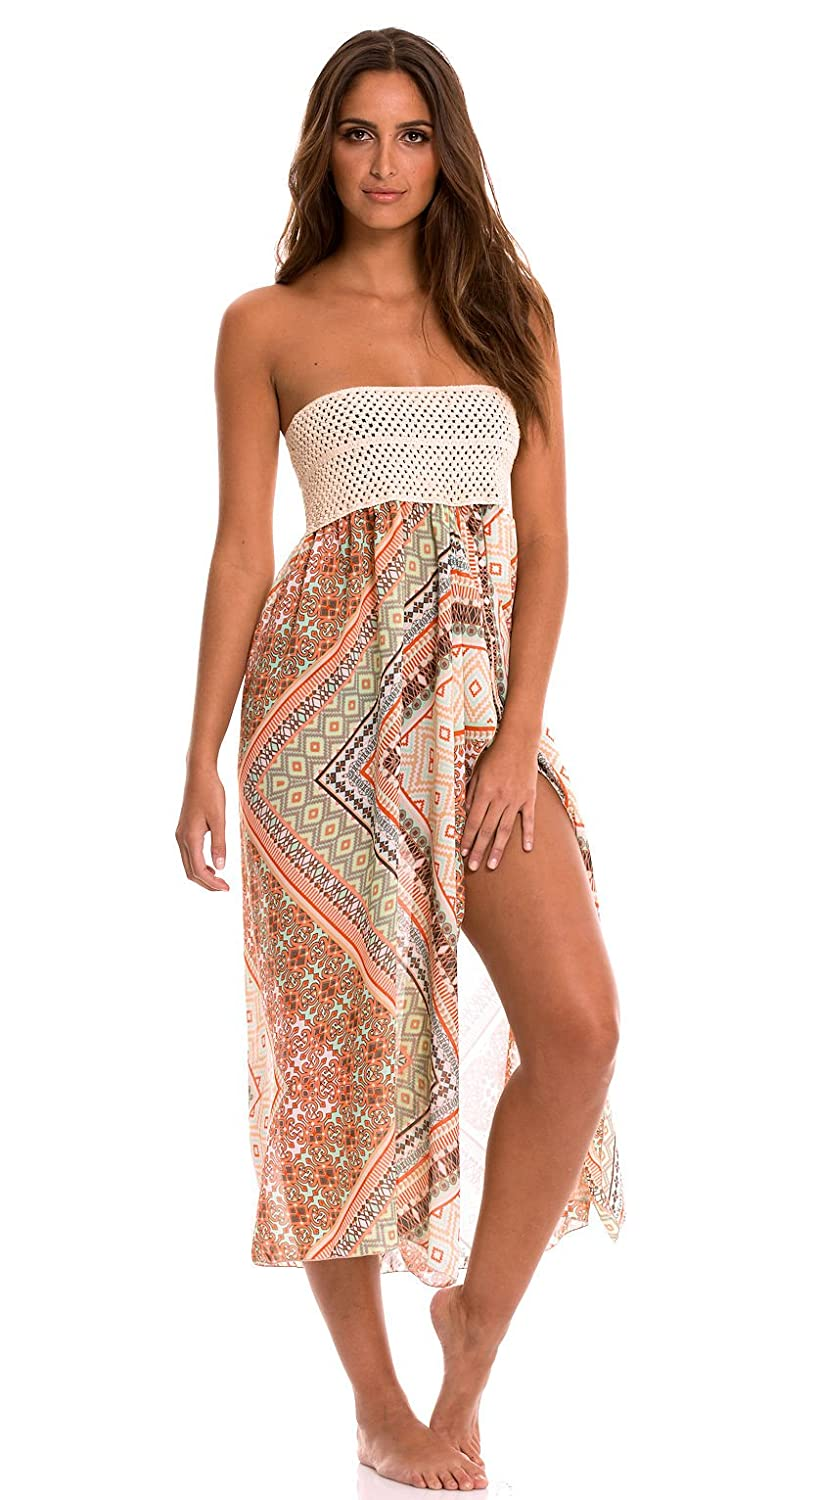 cf07c47d3011 ELAN Women's Strapless Crochet Top Beach Cover-Up Maxi at Amazon Women's  Clothing store: